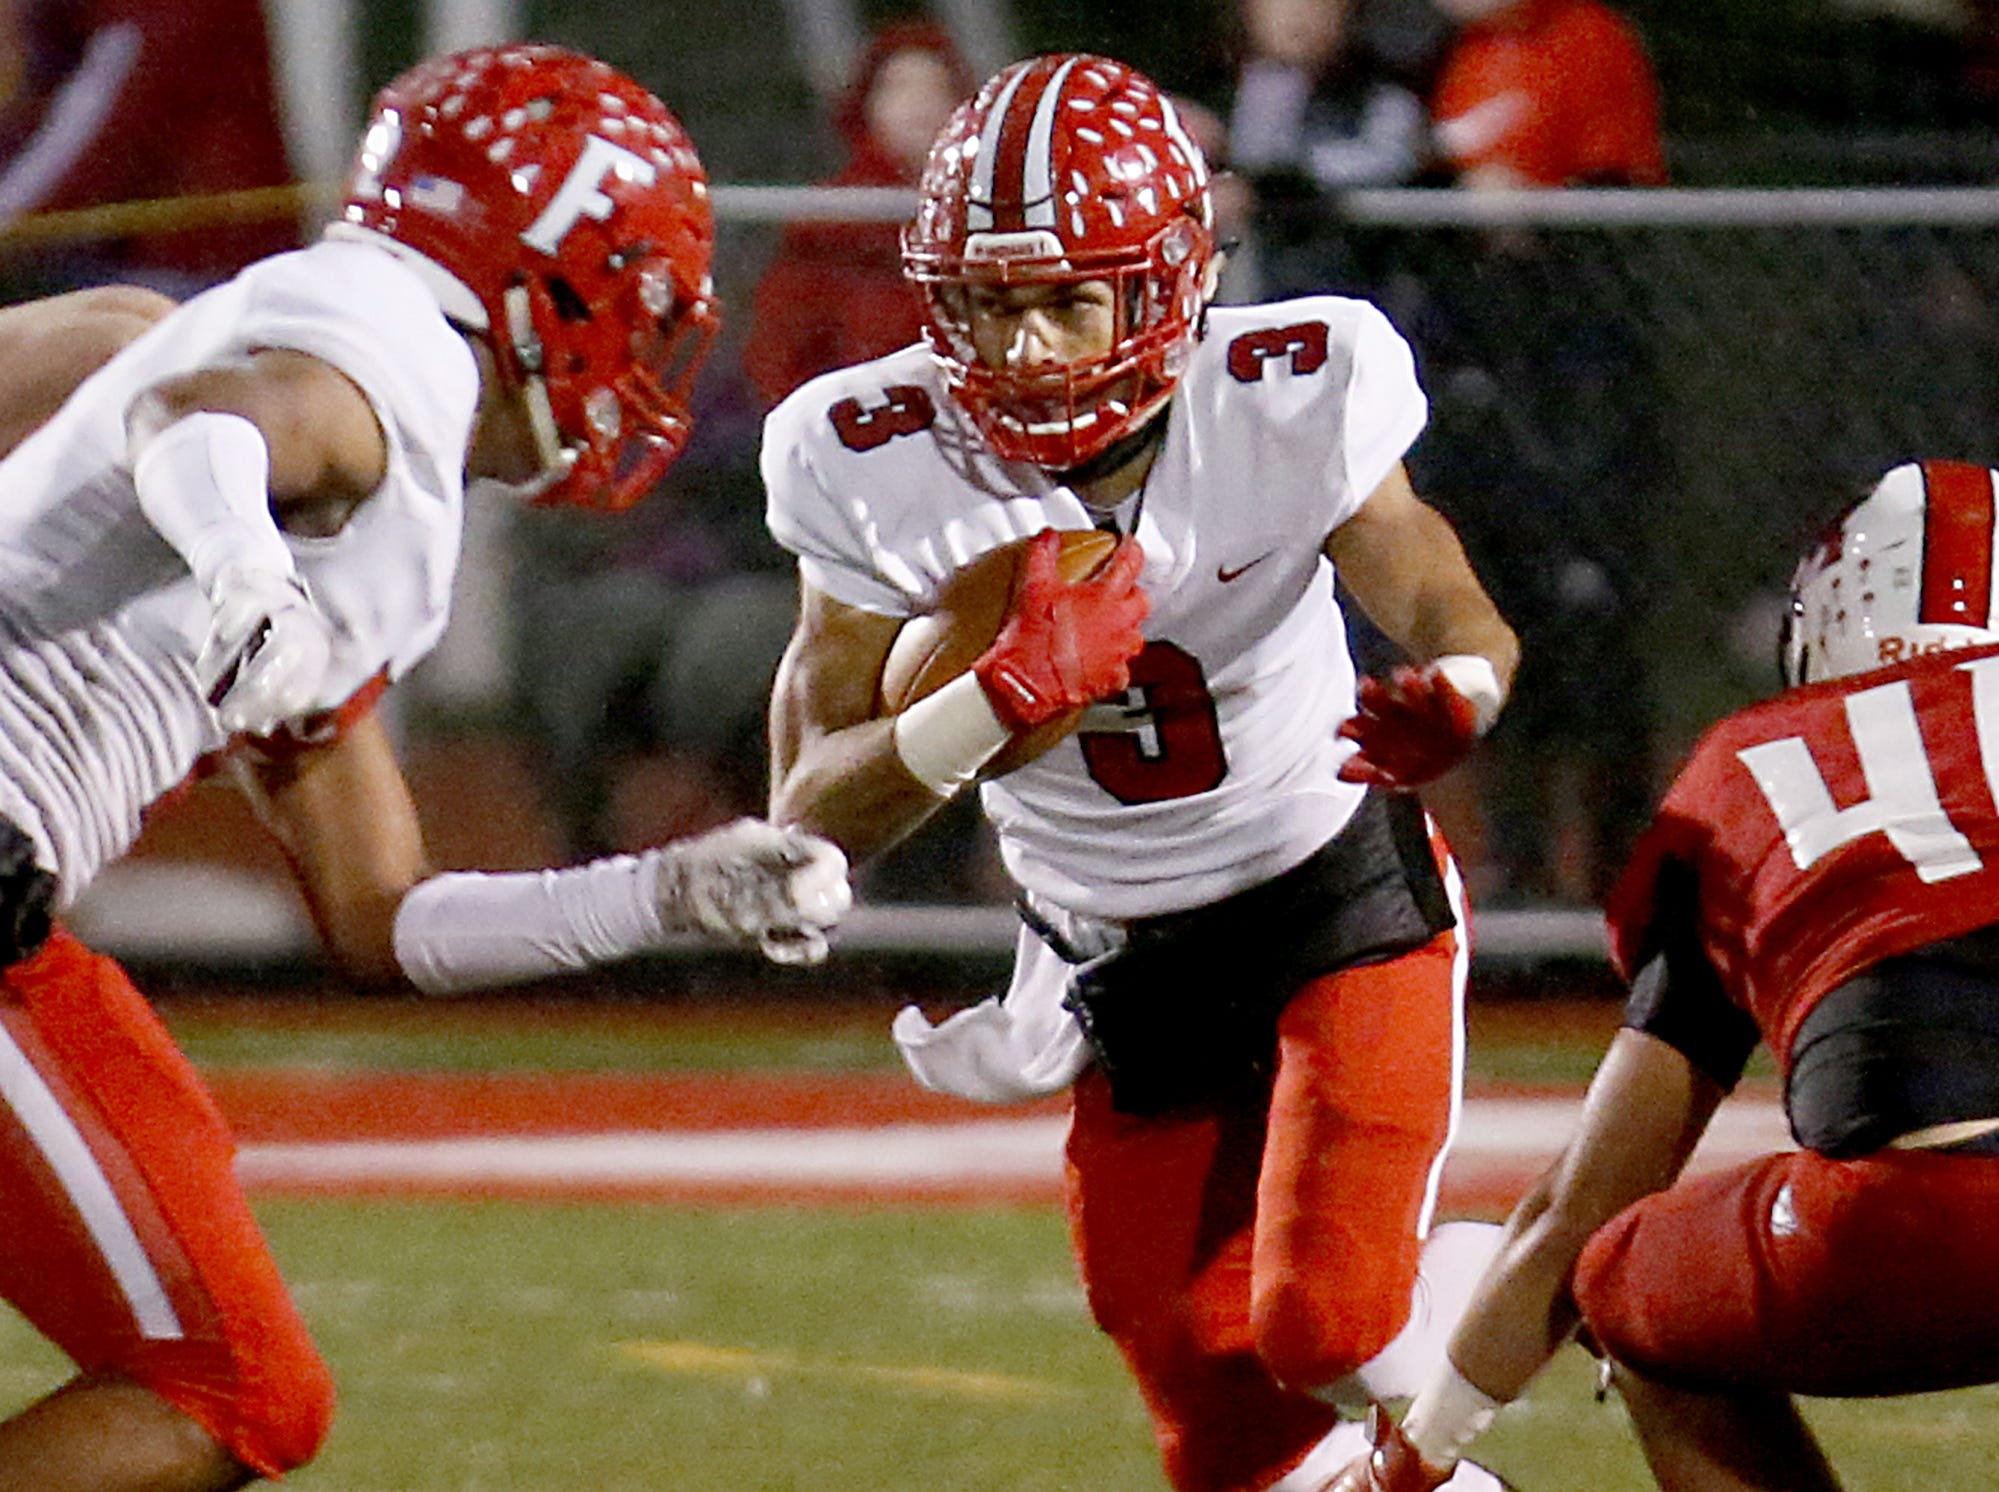 Fairfield wide receiver Peyton Brown looks for a lane against Milford during their Division I playoff game at Eagle Stadium in Milford Friday, Nov. 2, 2018.